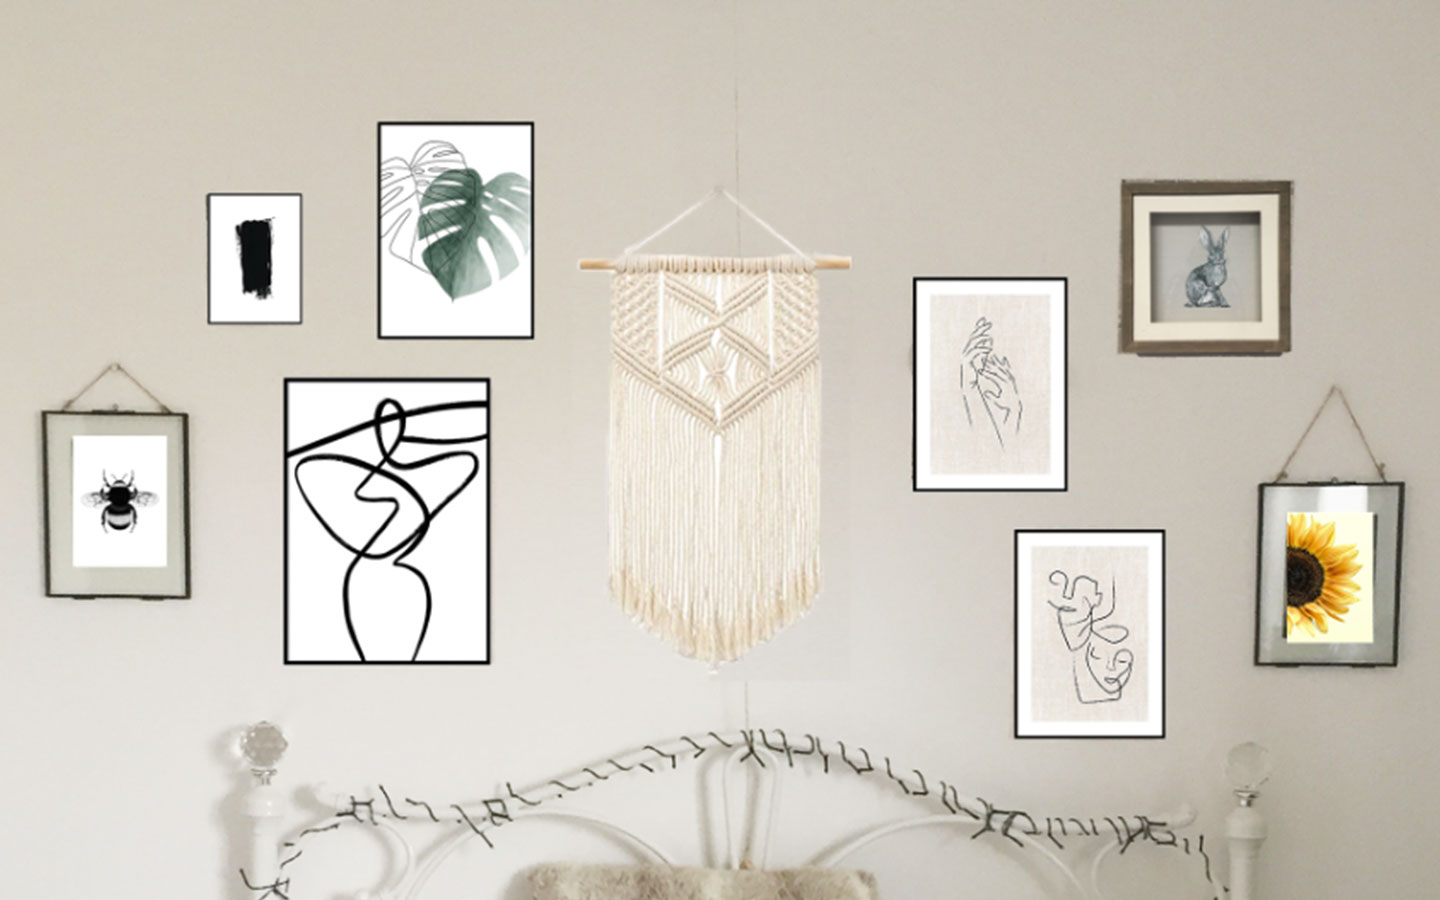 desenio print gallery wall above bed in bedroom